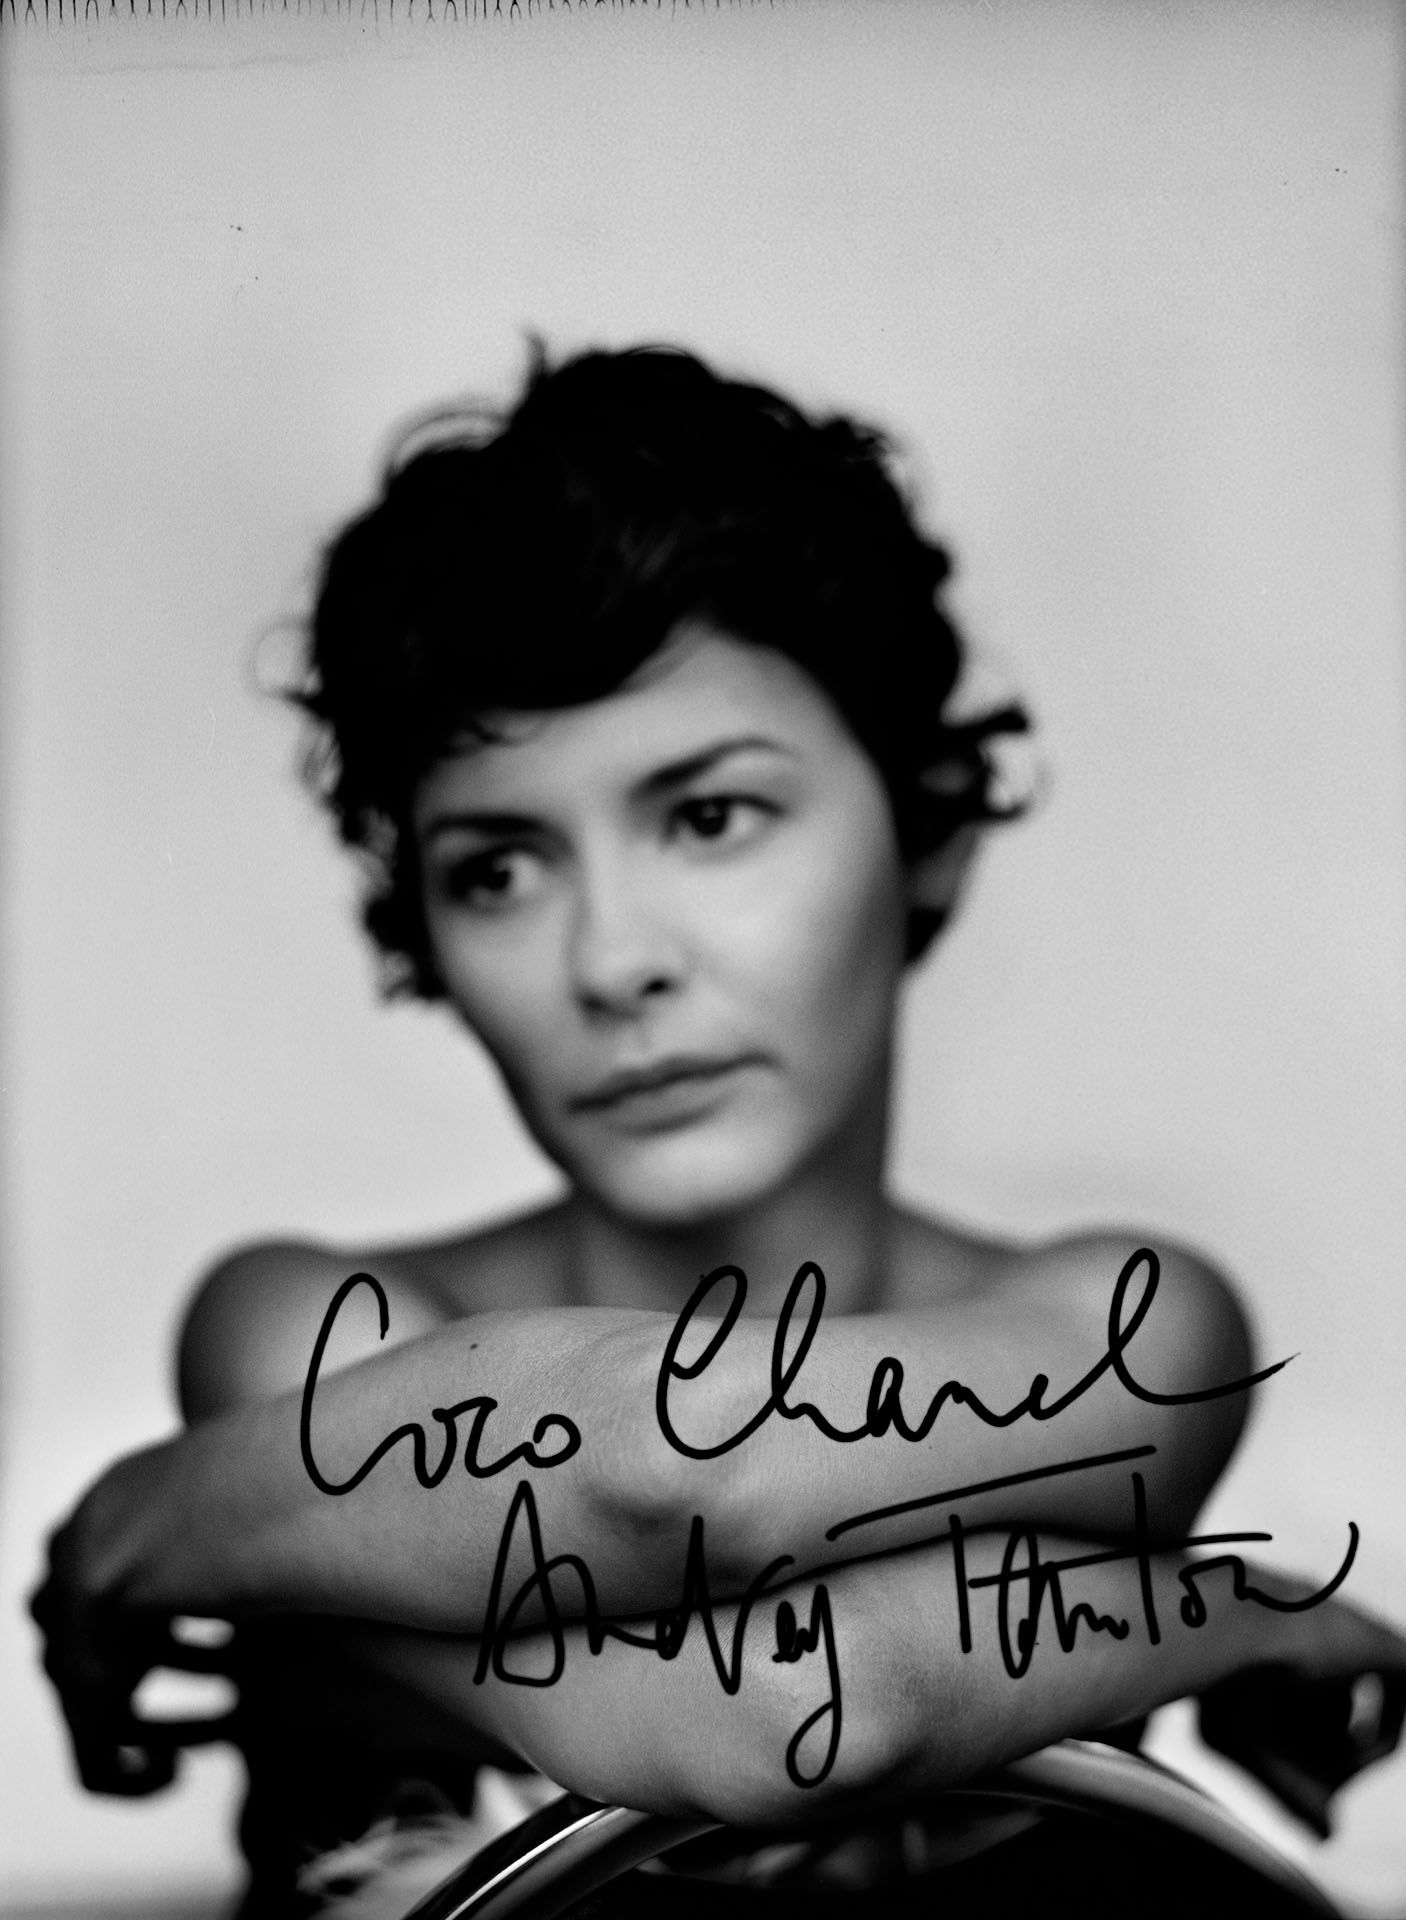 blurred portrait of Audrey Tautou in black and white sitting backward on chair on white background white autograph of coco chanel in foreground by Jocelyn Michel for Voir